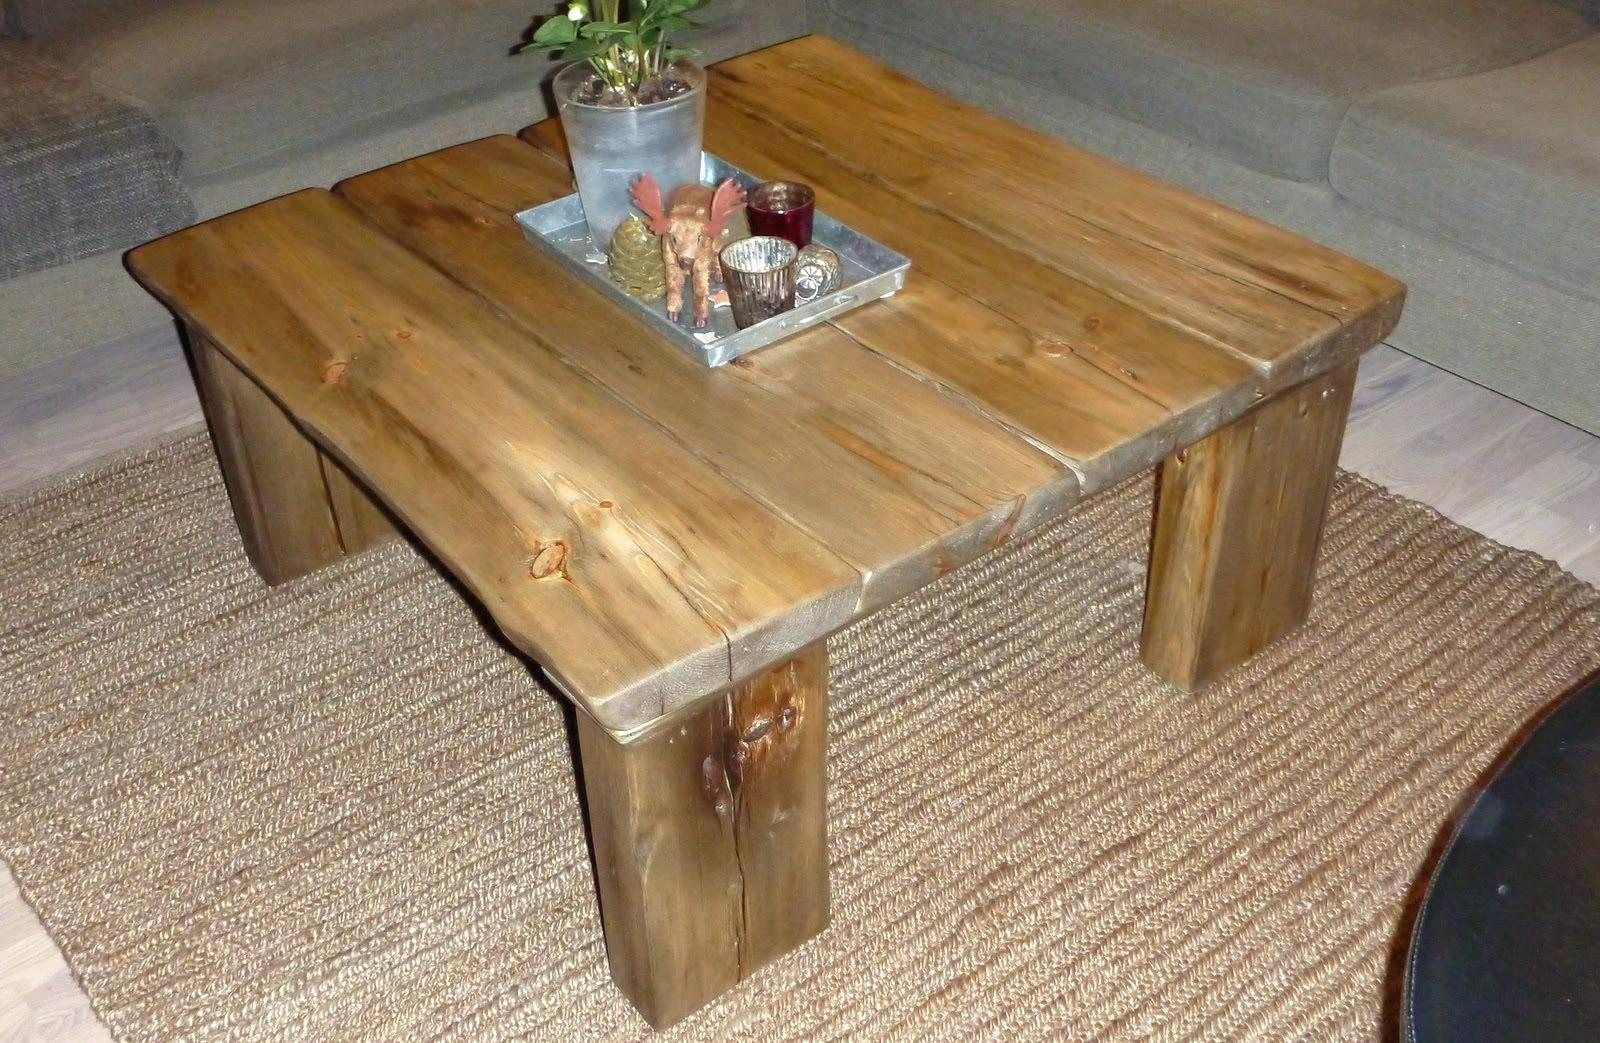 Leg Ideas For Coffee Table Coffee table plans Coffee table legs